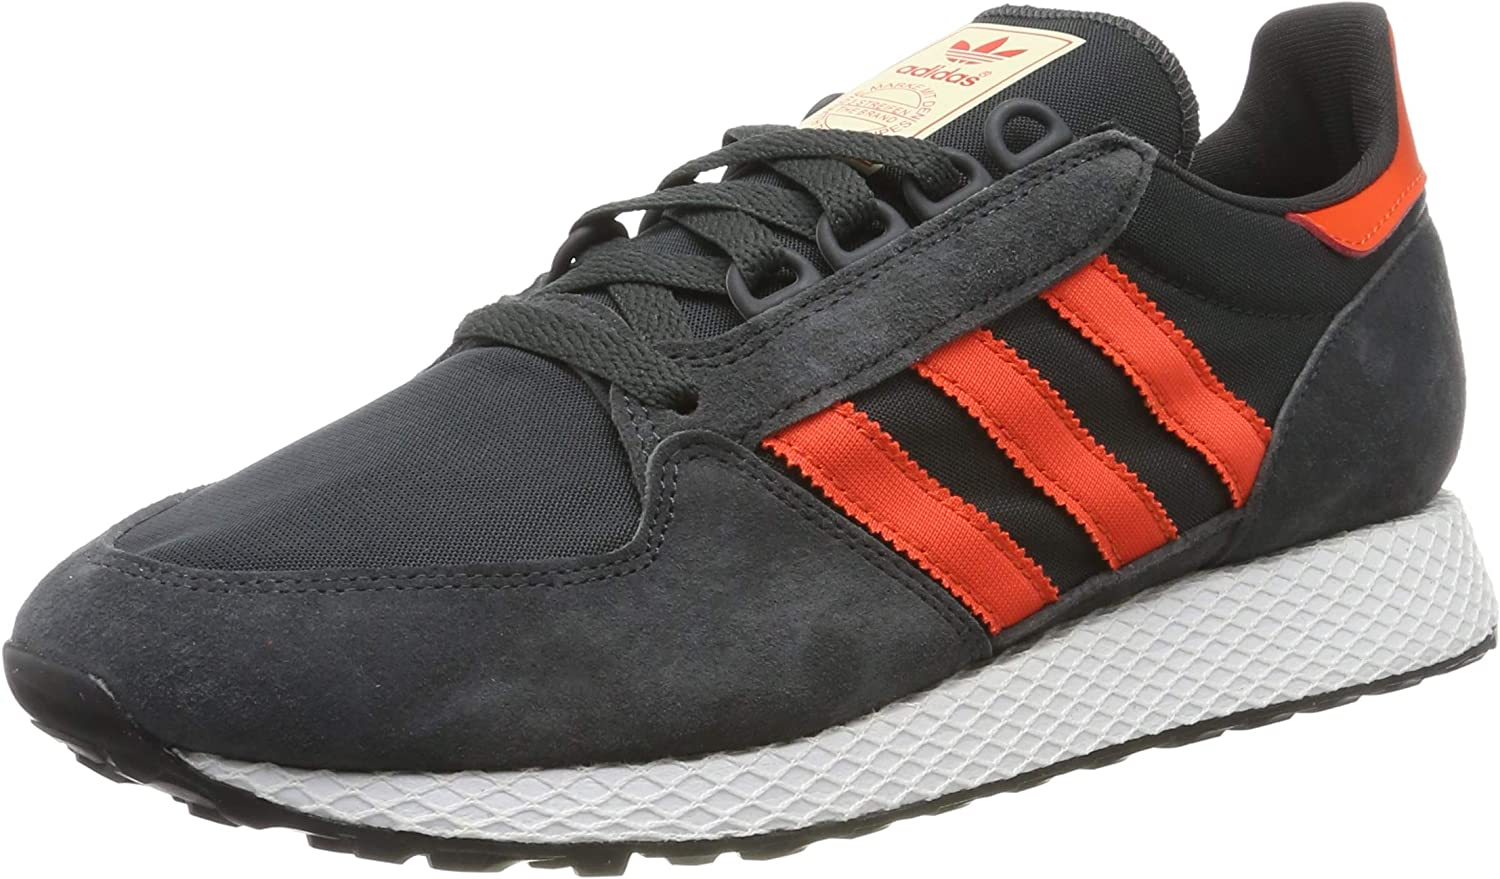 13aaf360a25c4 Adidas Men's Forest Forest Forest Grove Gymnastics shoes f48663 ...